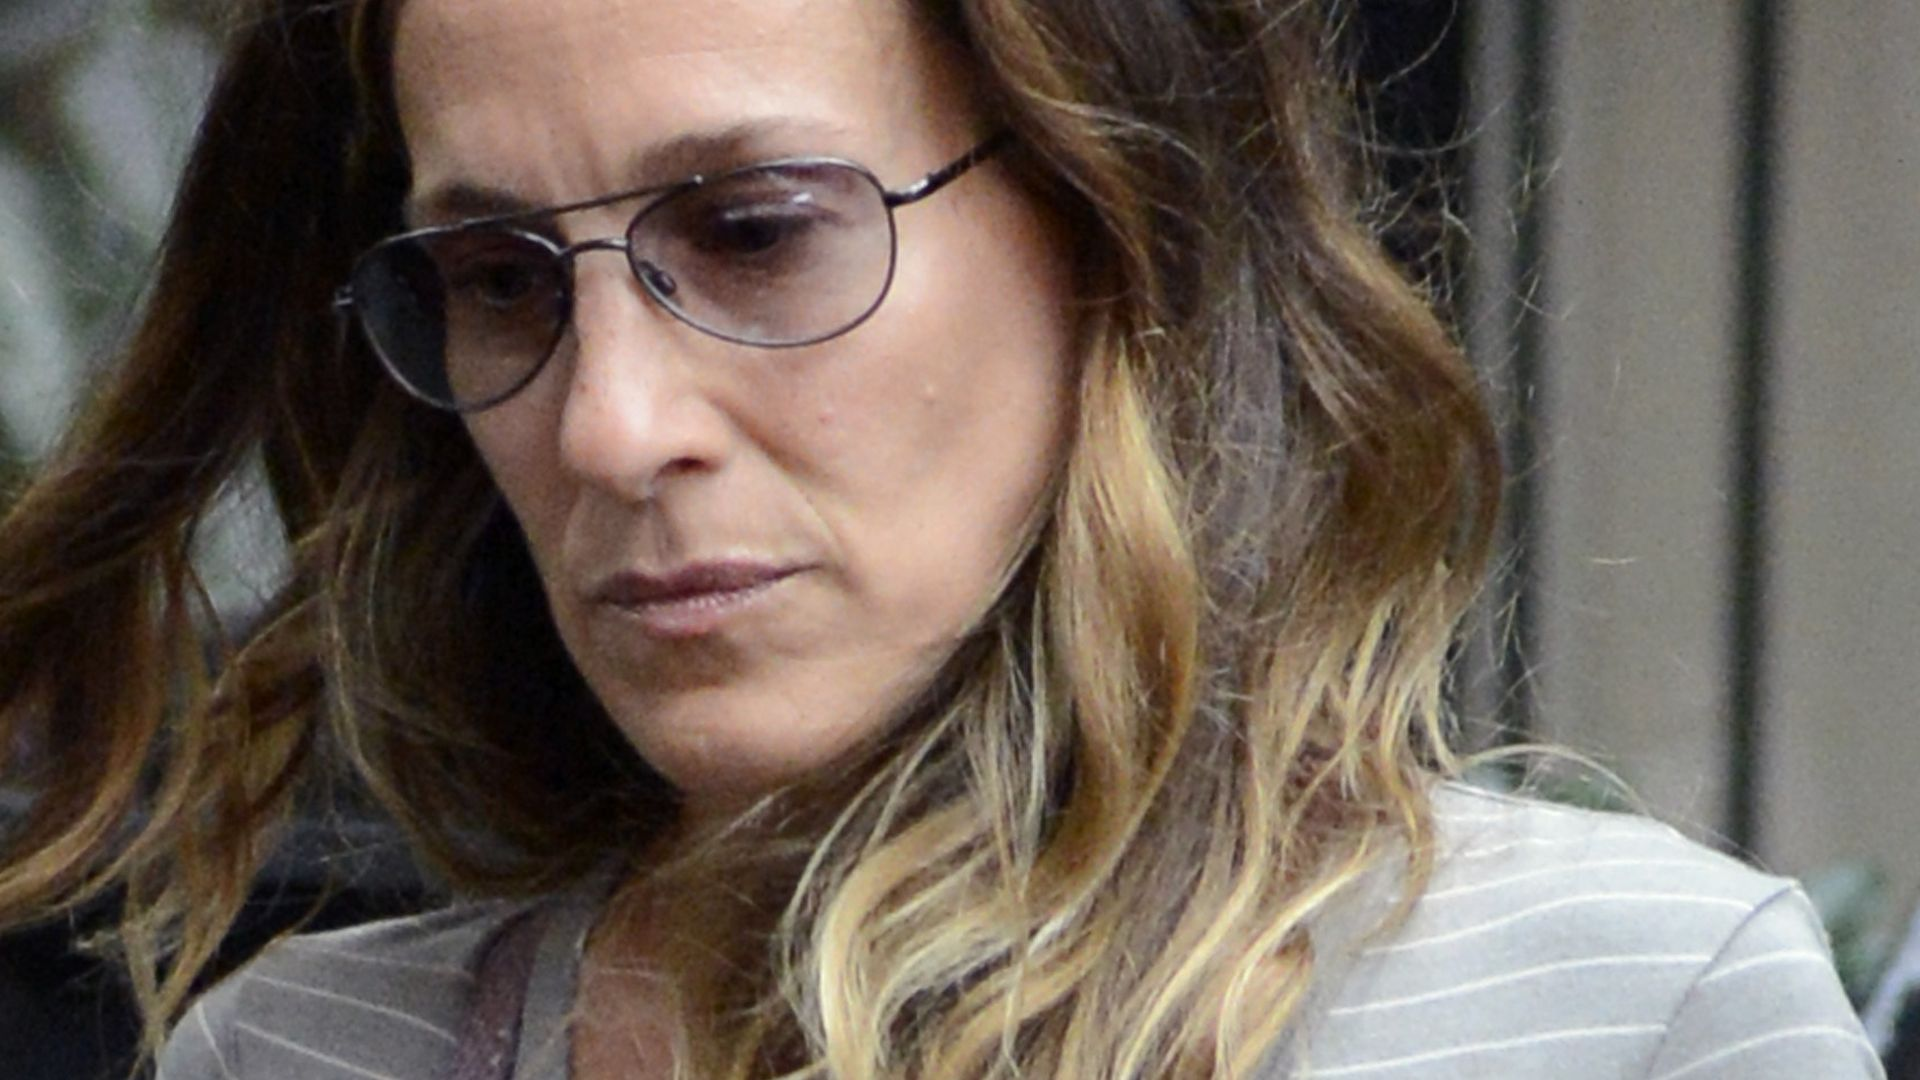 Sarah Jessica Parker Absage an Carrie Diaries  Promiflashde